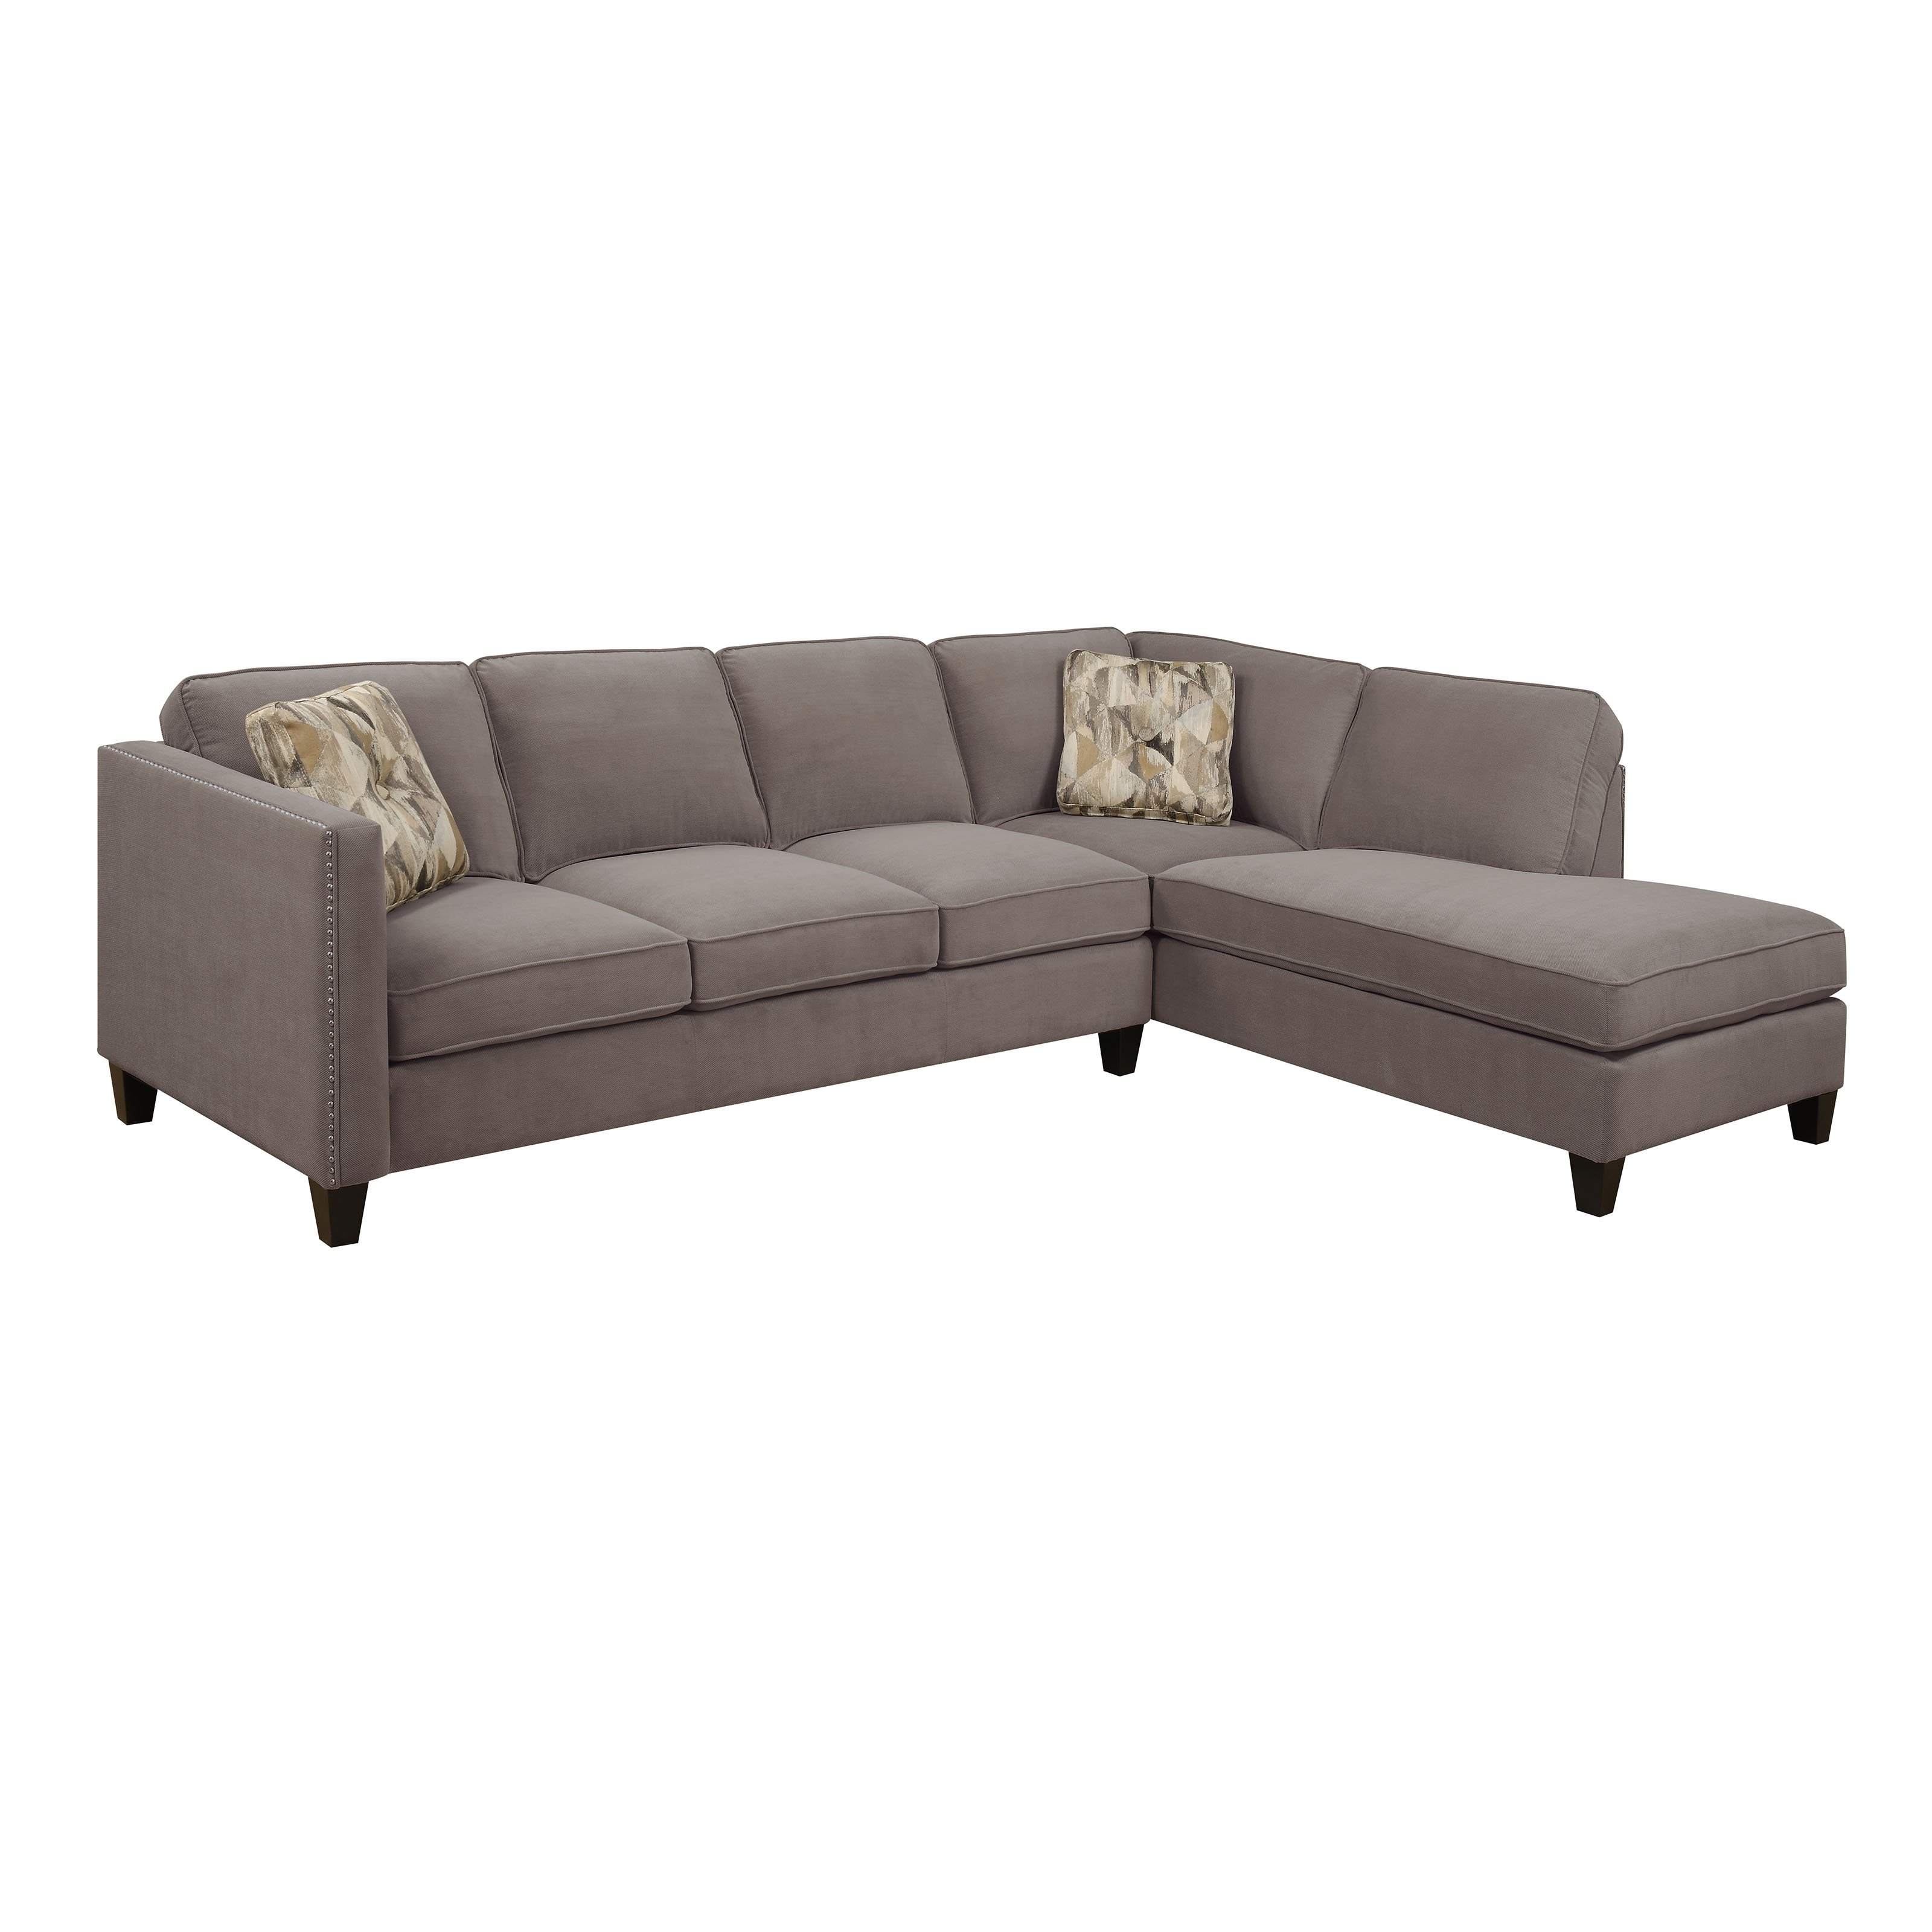 Emerald Home Focus 2 Piece Sectional Sofa With Chaise   Hayneedle Within Dufresne Sectional Sofas (Image 9 of 10)